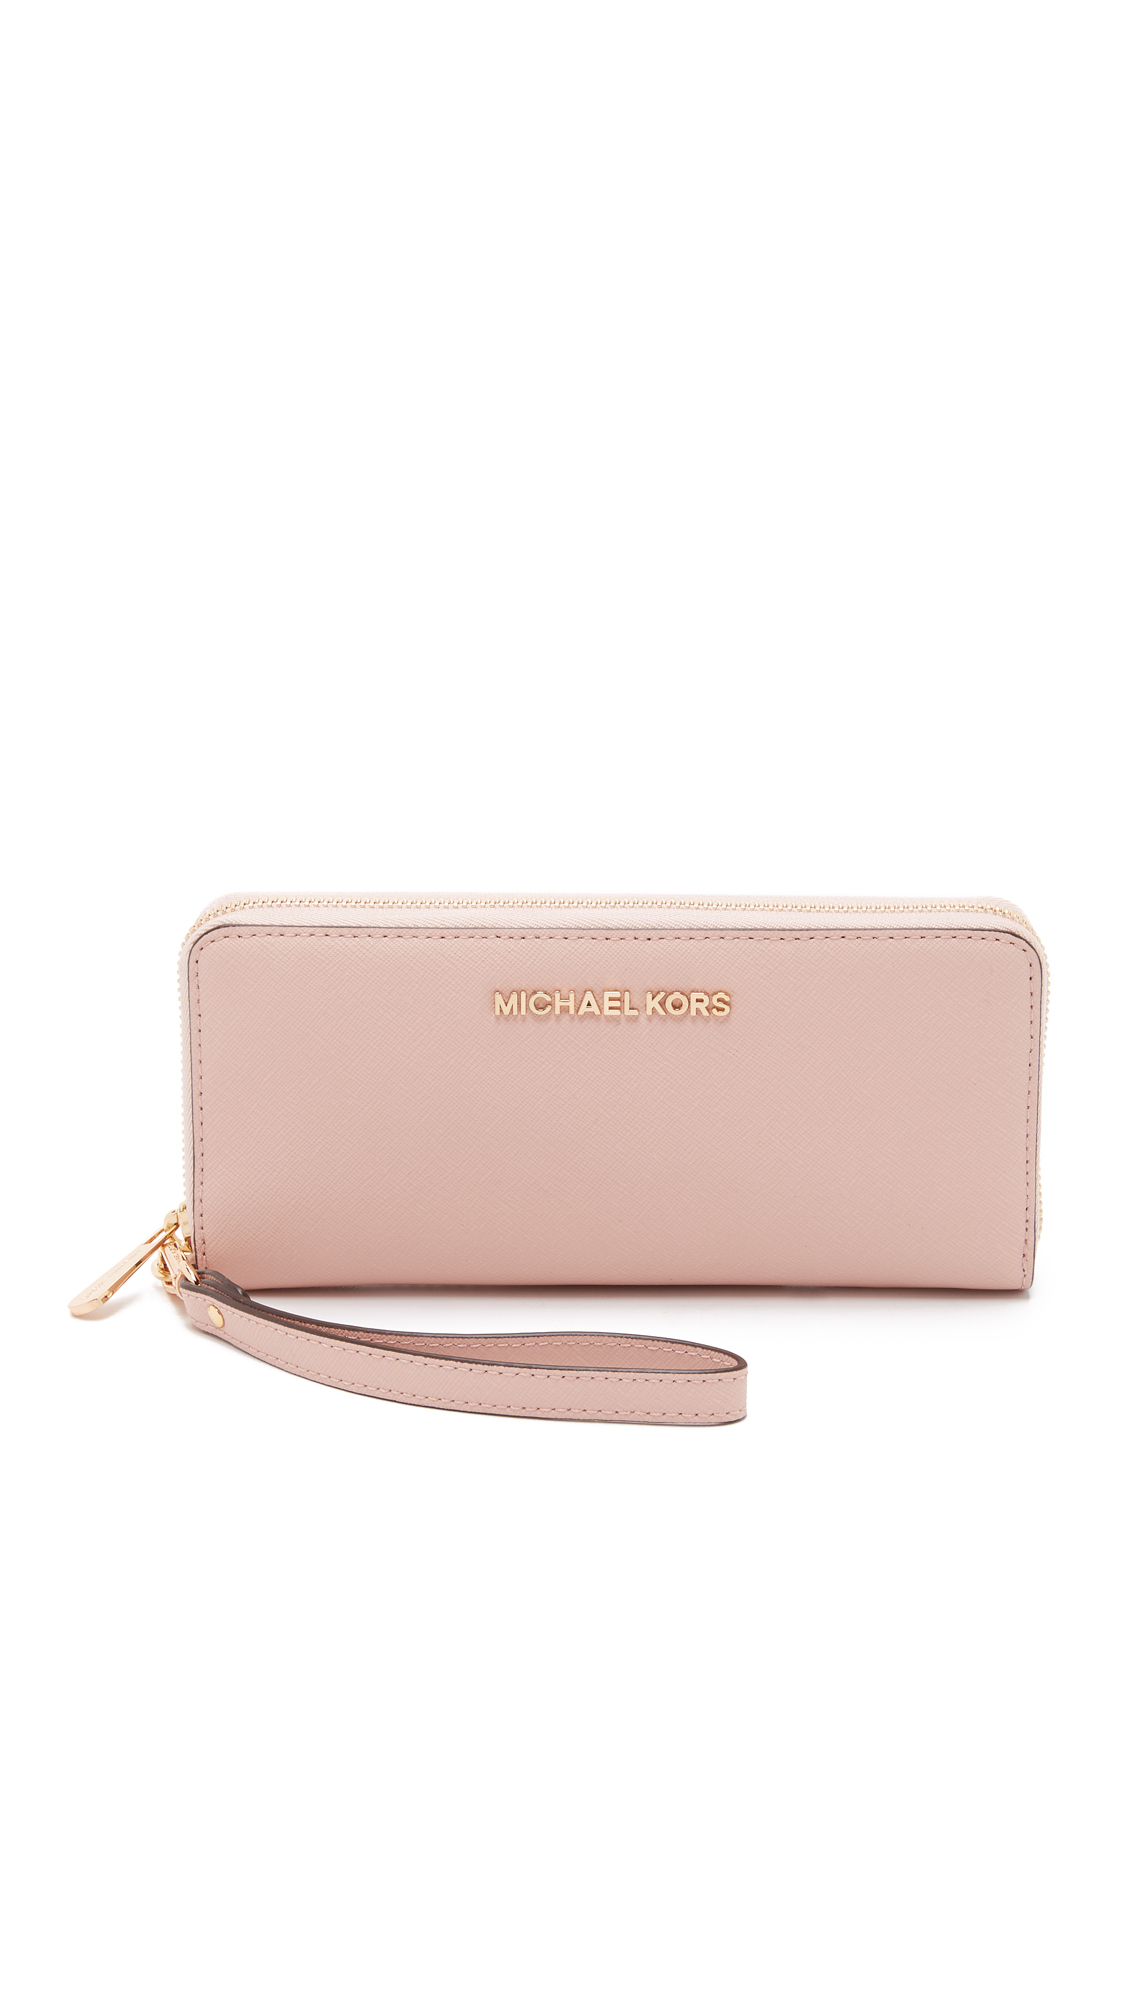 a0a74be5560a MICHAEL Michael Kors Jet Set Travel Continental Wallet - Ballet in ...